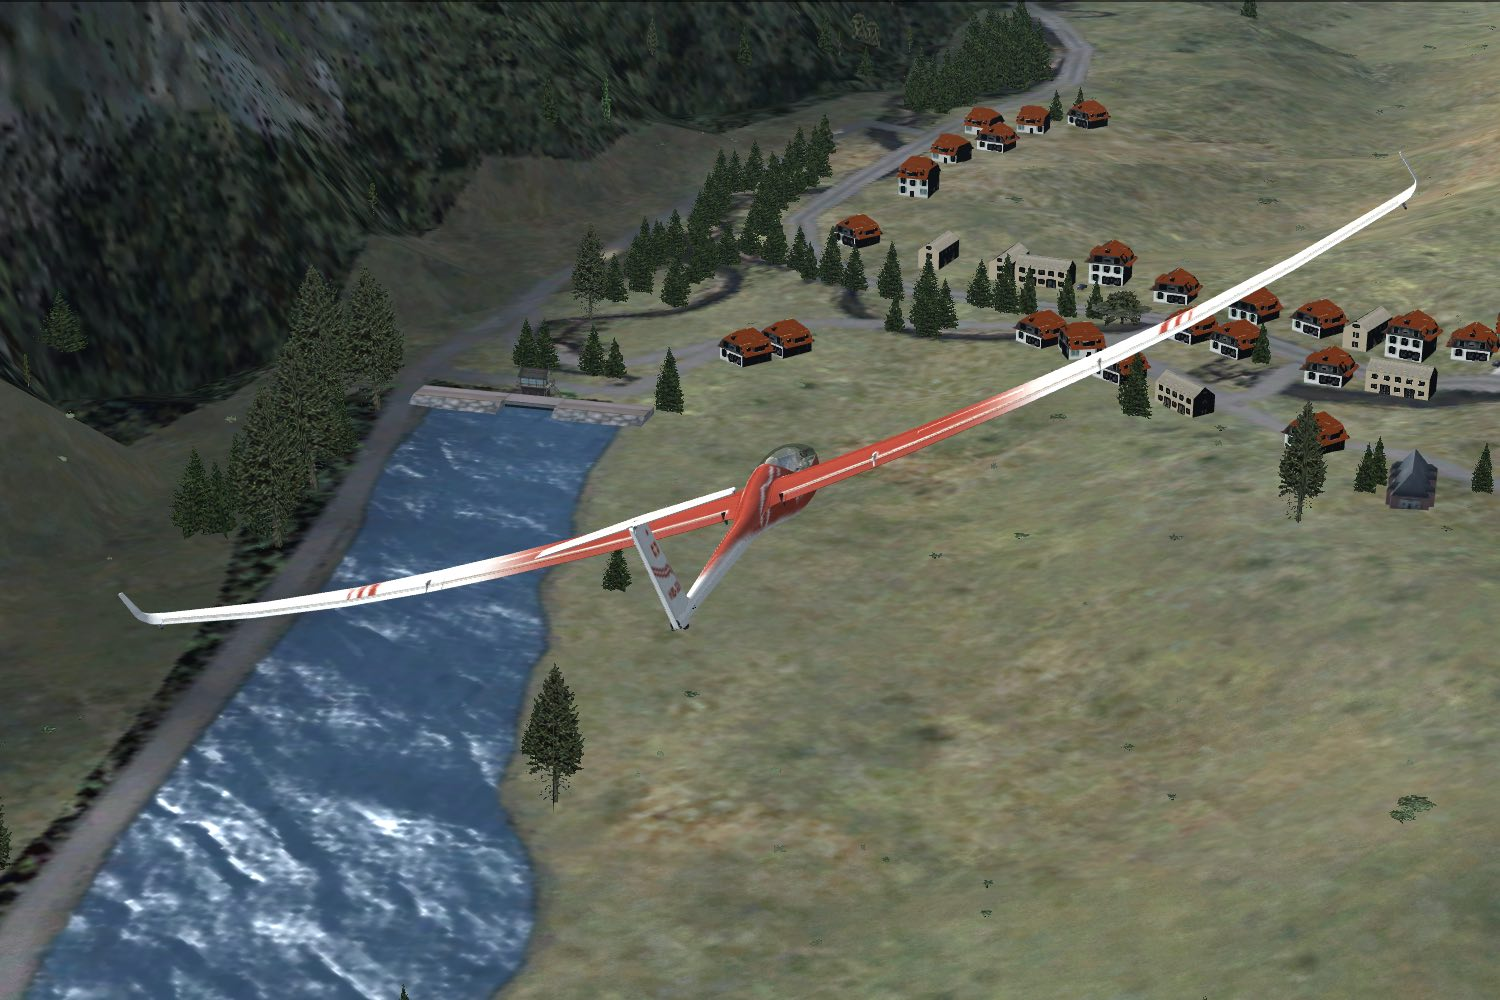 ESCI FLIGHTSIM PUBLICATIONS - PILATE'S GHOST - A TECHNO-THRILLER SET IN THE SWISS ALPS - FSX